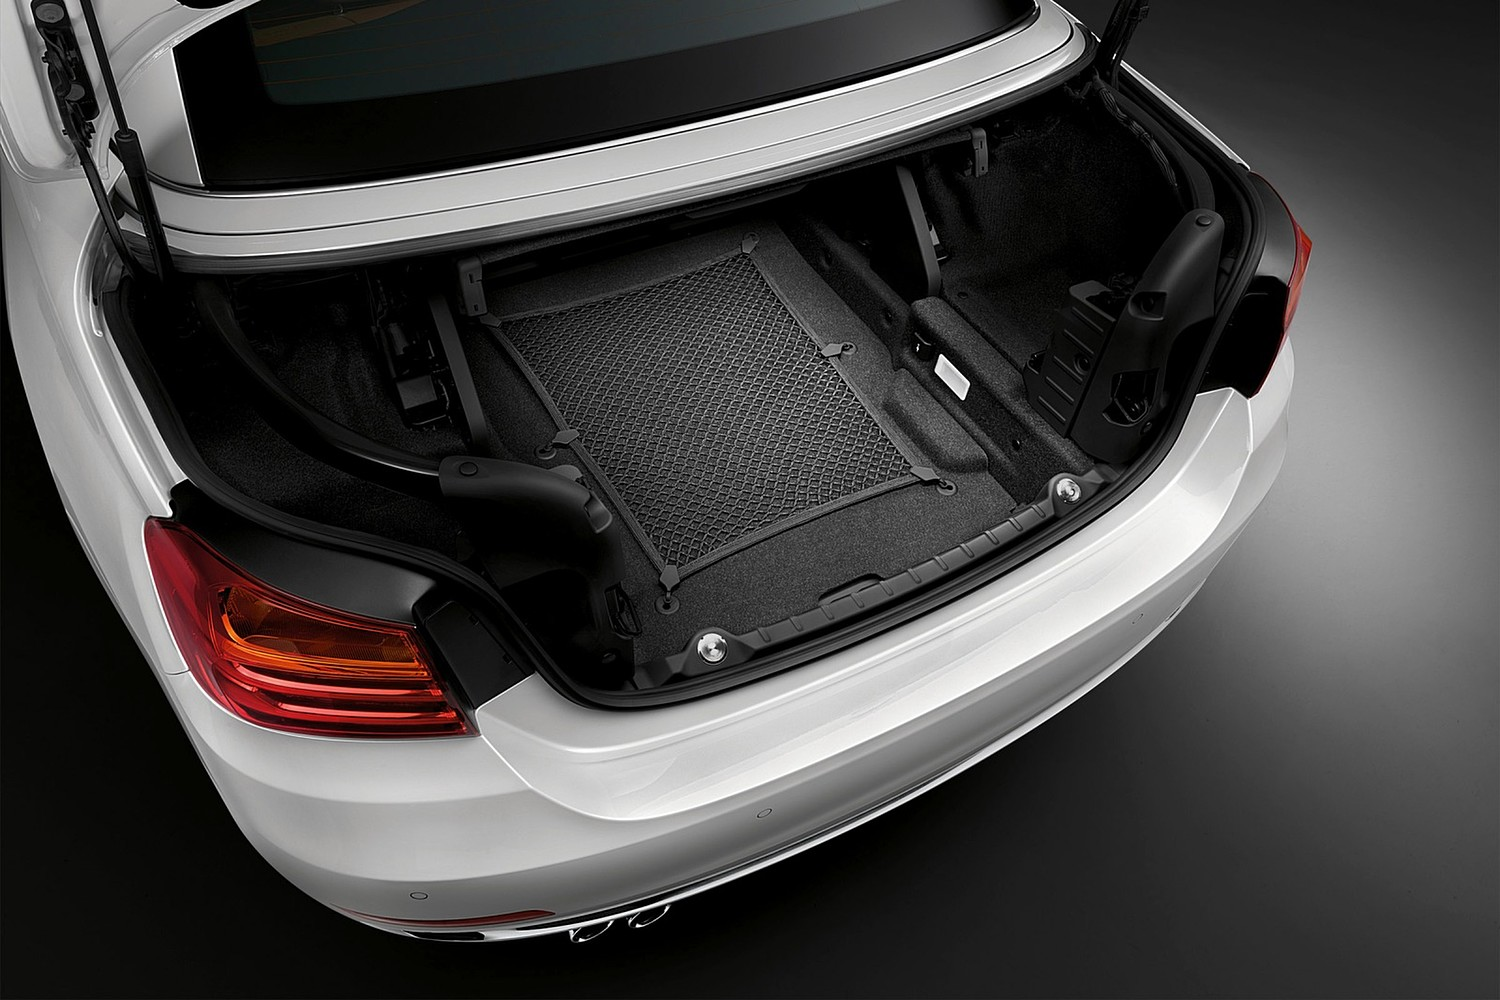 2017 BMW 4 Series 430i SULEV Convertible Cargo Area. Luxury Line Package Shown.